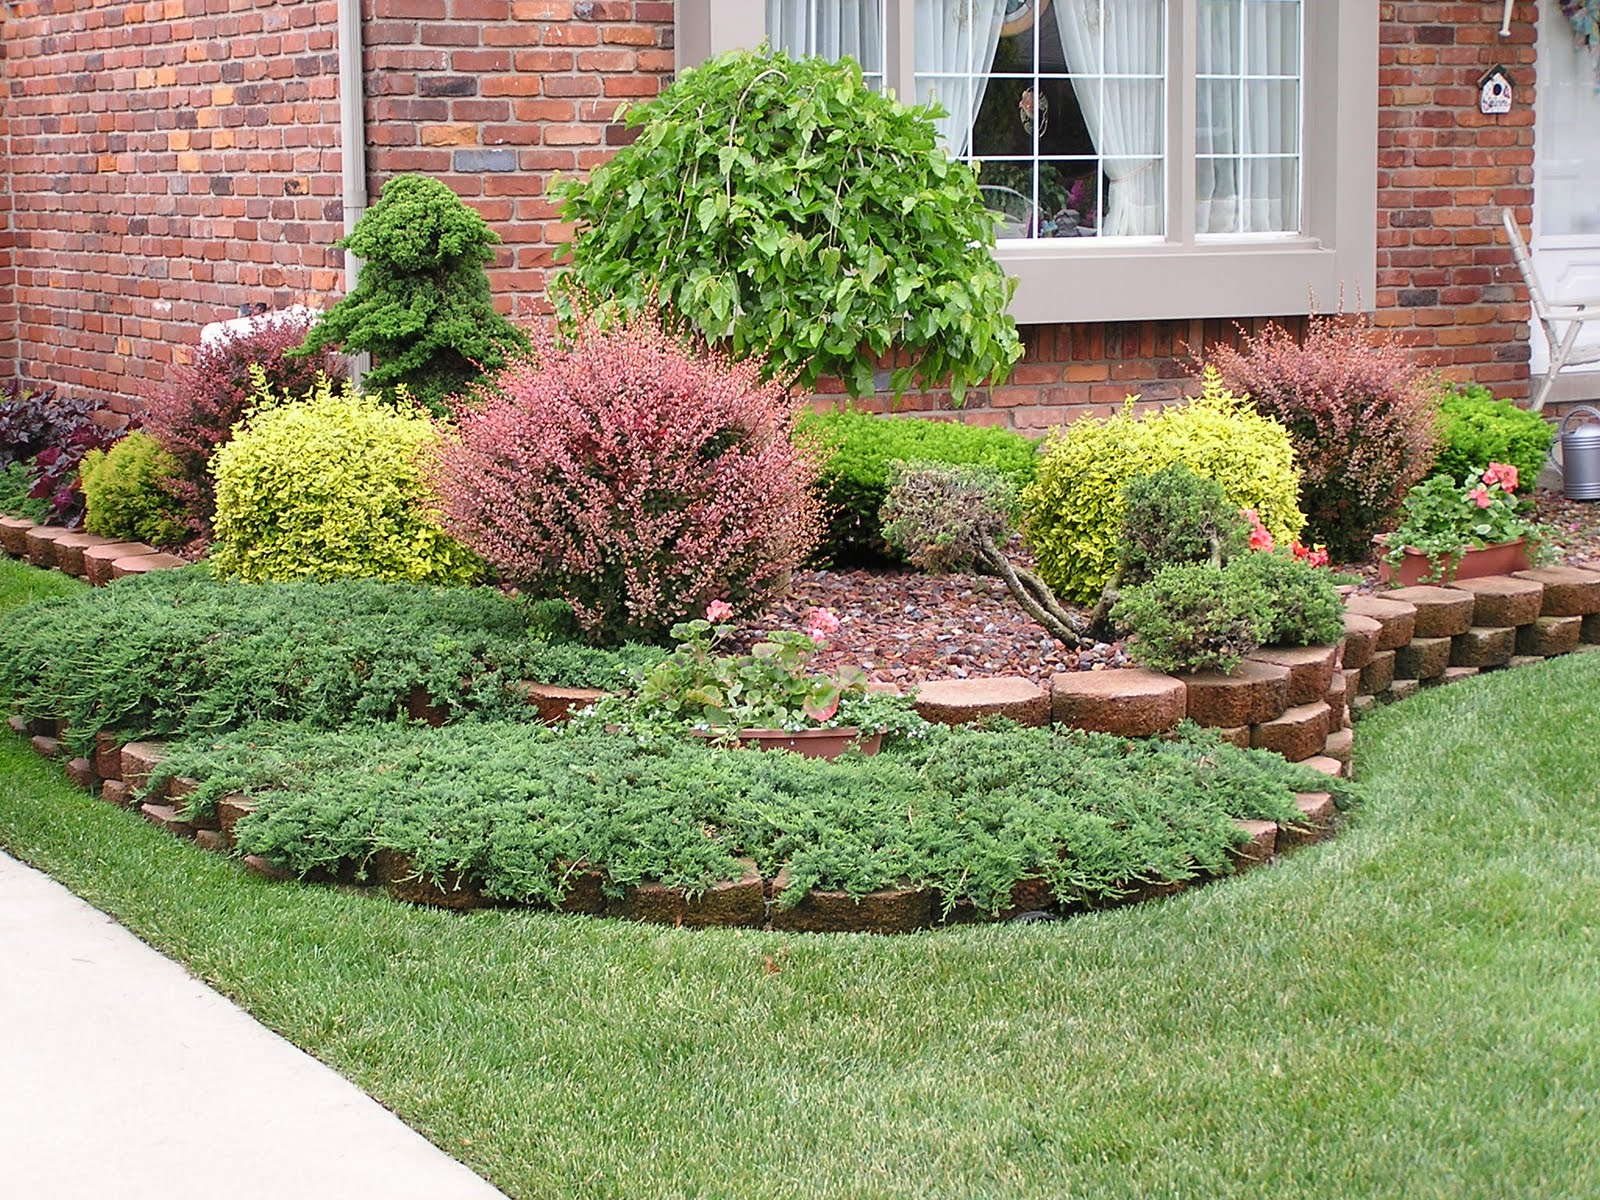 D i y d e s i g n curb appeal part 2 the landscaping for Design your front garden